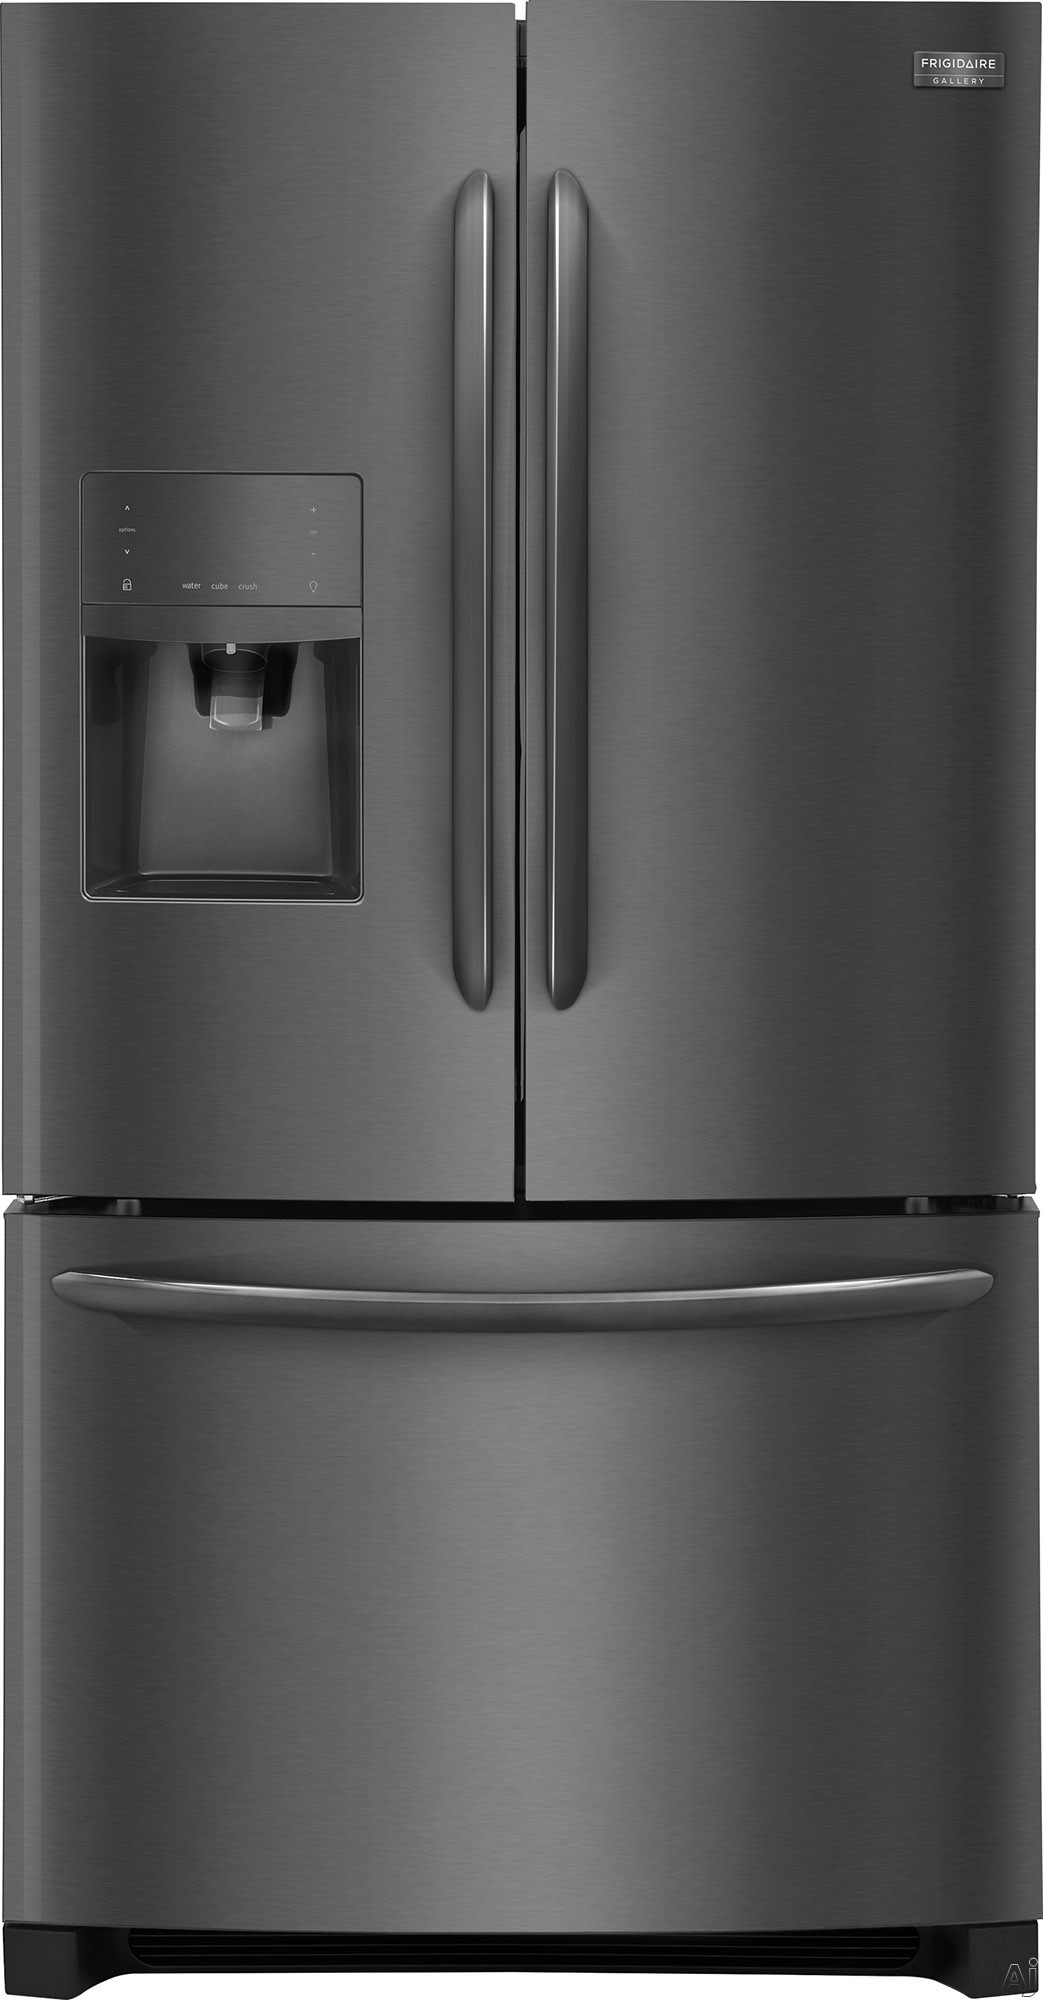 Frigidaire Gallery Series FGHB2867T 36 Inch French Door Refrigerator with Smudge-Proof™ Finish, PureSource® Ultra Filters, Quick Freeze, Effortless™ Glide Crispers, Gallon Door Storage, Sabbath Mode, ENERGY STAR® and 27.7 cu. ft. Capacity FGHB2867T